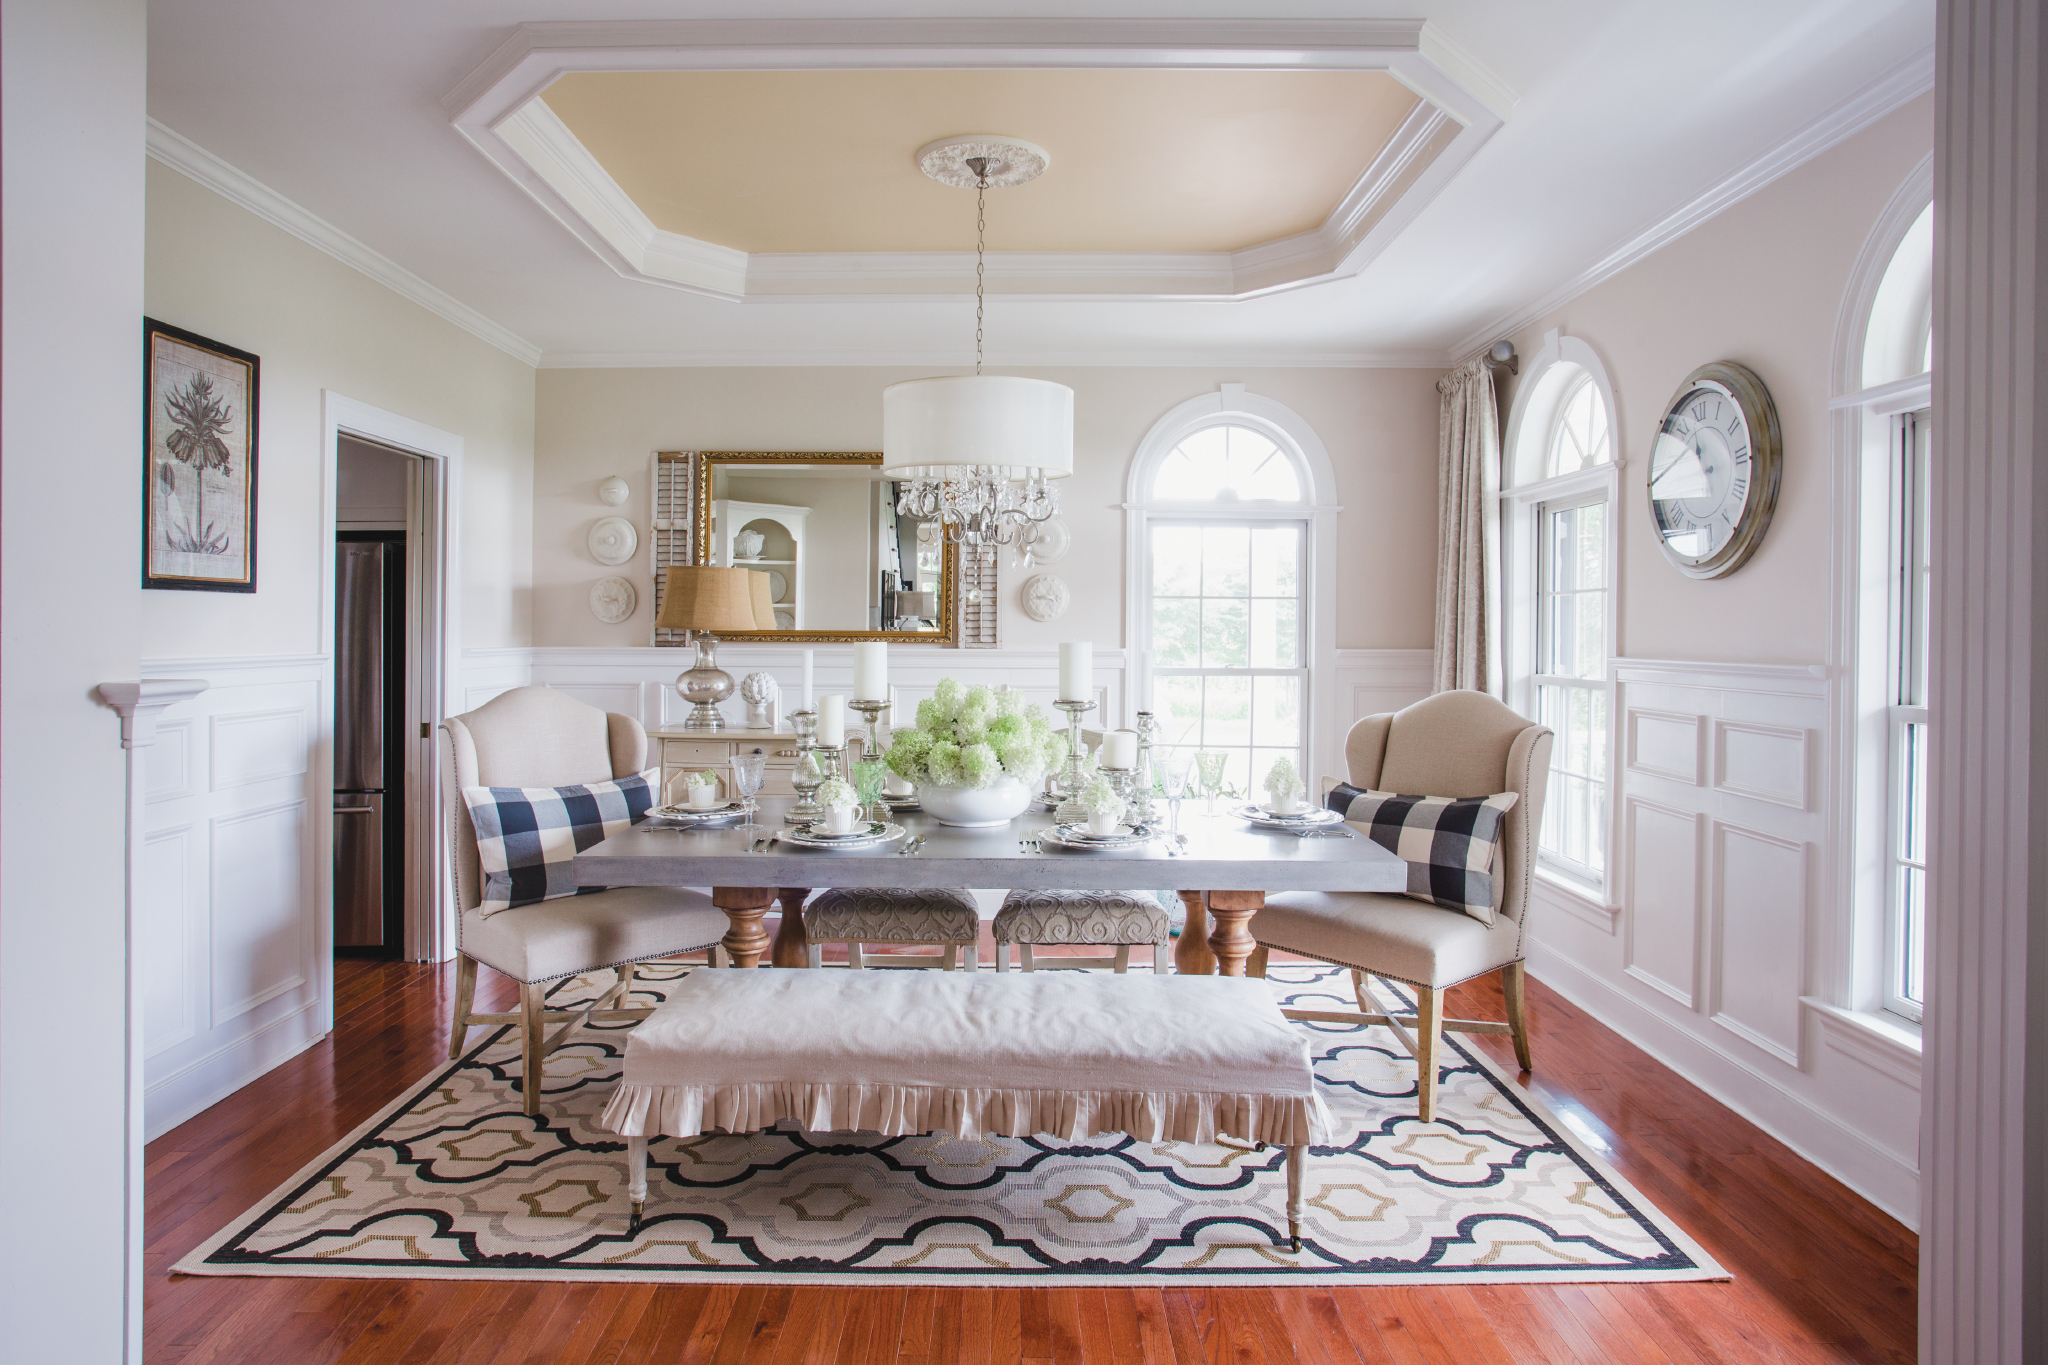 Is Your Style Traditional Contemporary Farmhouse Most Home Decor Styles Borrow A Little From All Of The Above